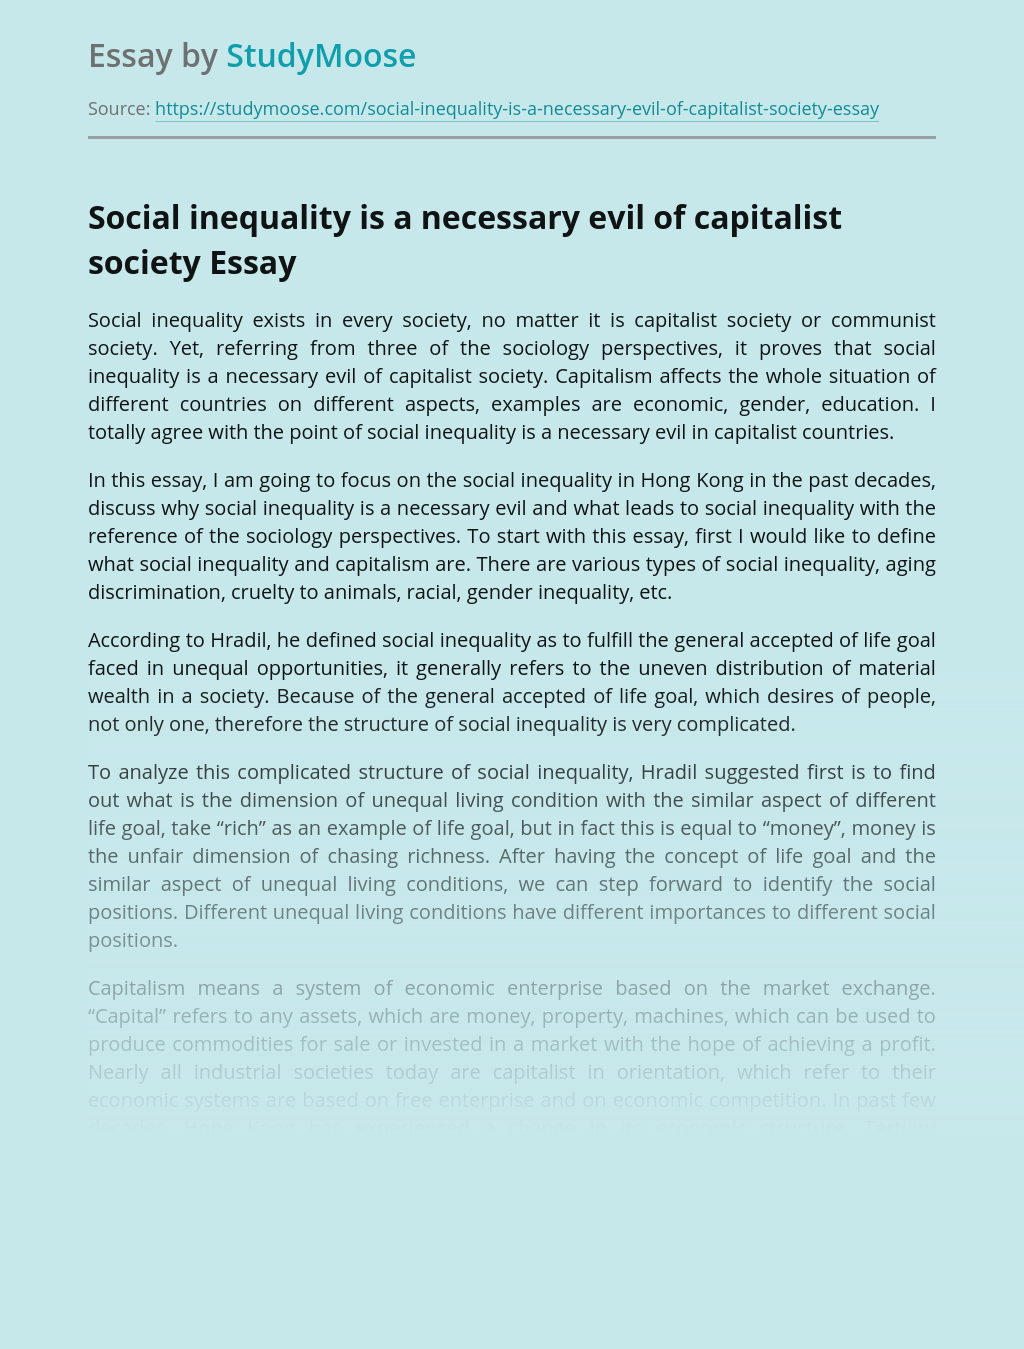 Social inequality is a necessary evil of capitalist society